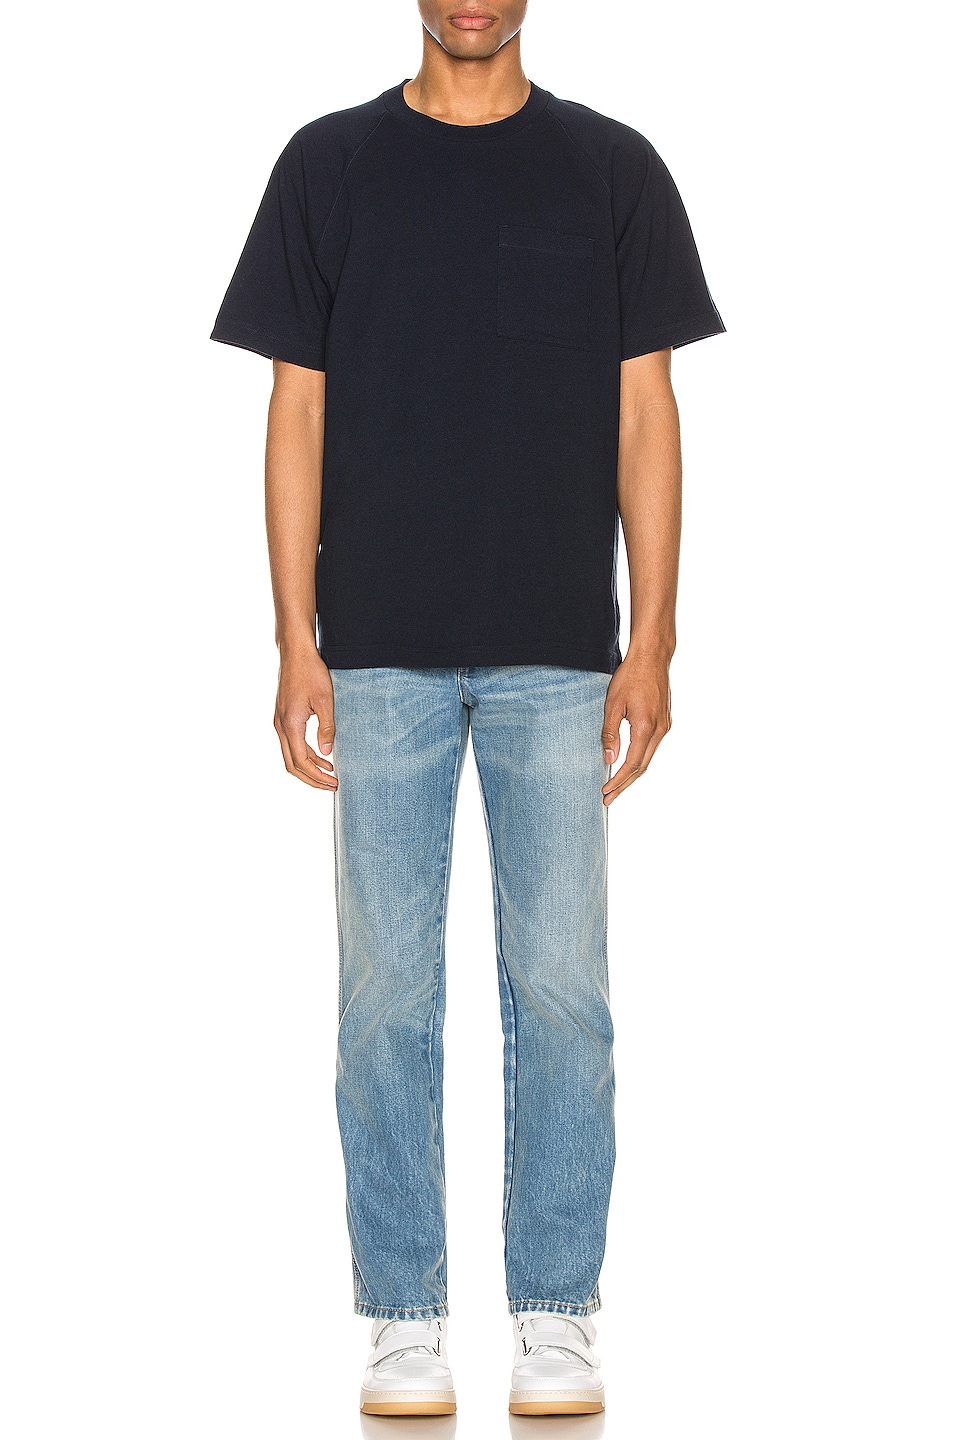 Image 5 of Acne Studios Graphic Tee in Navy Blue